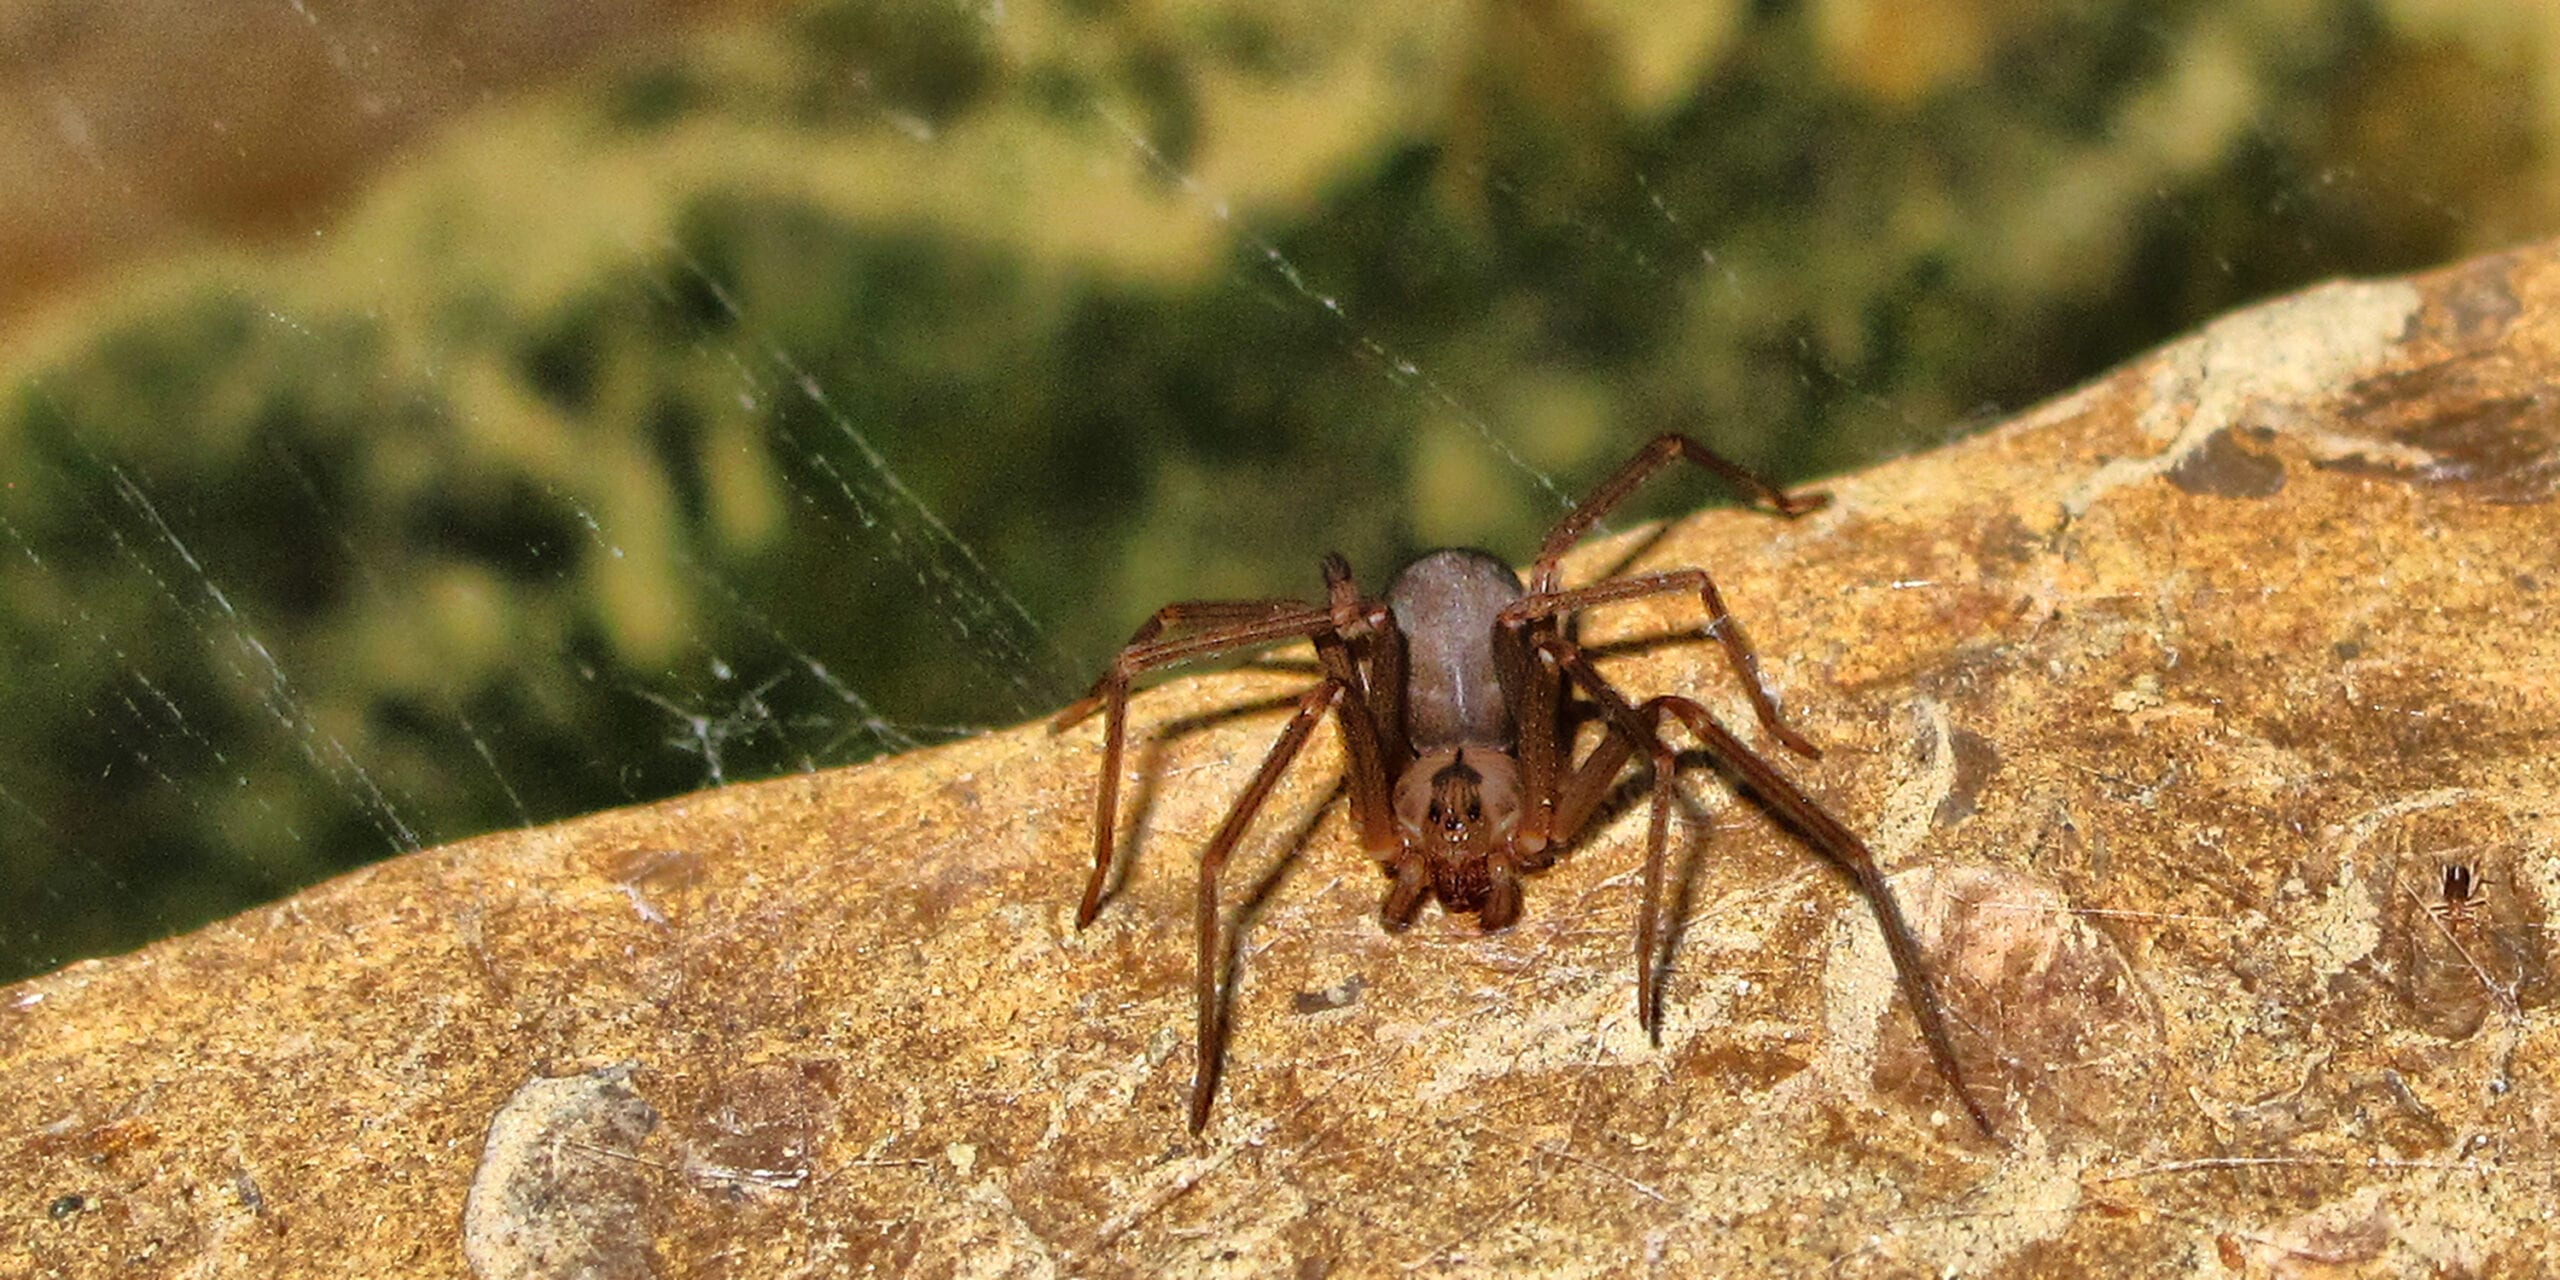 A brown recluse. RDM successfully defended a premises liability claim involving a spider bite at a hotel.